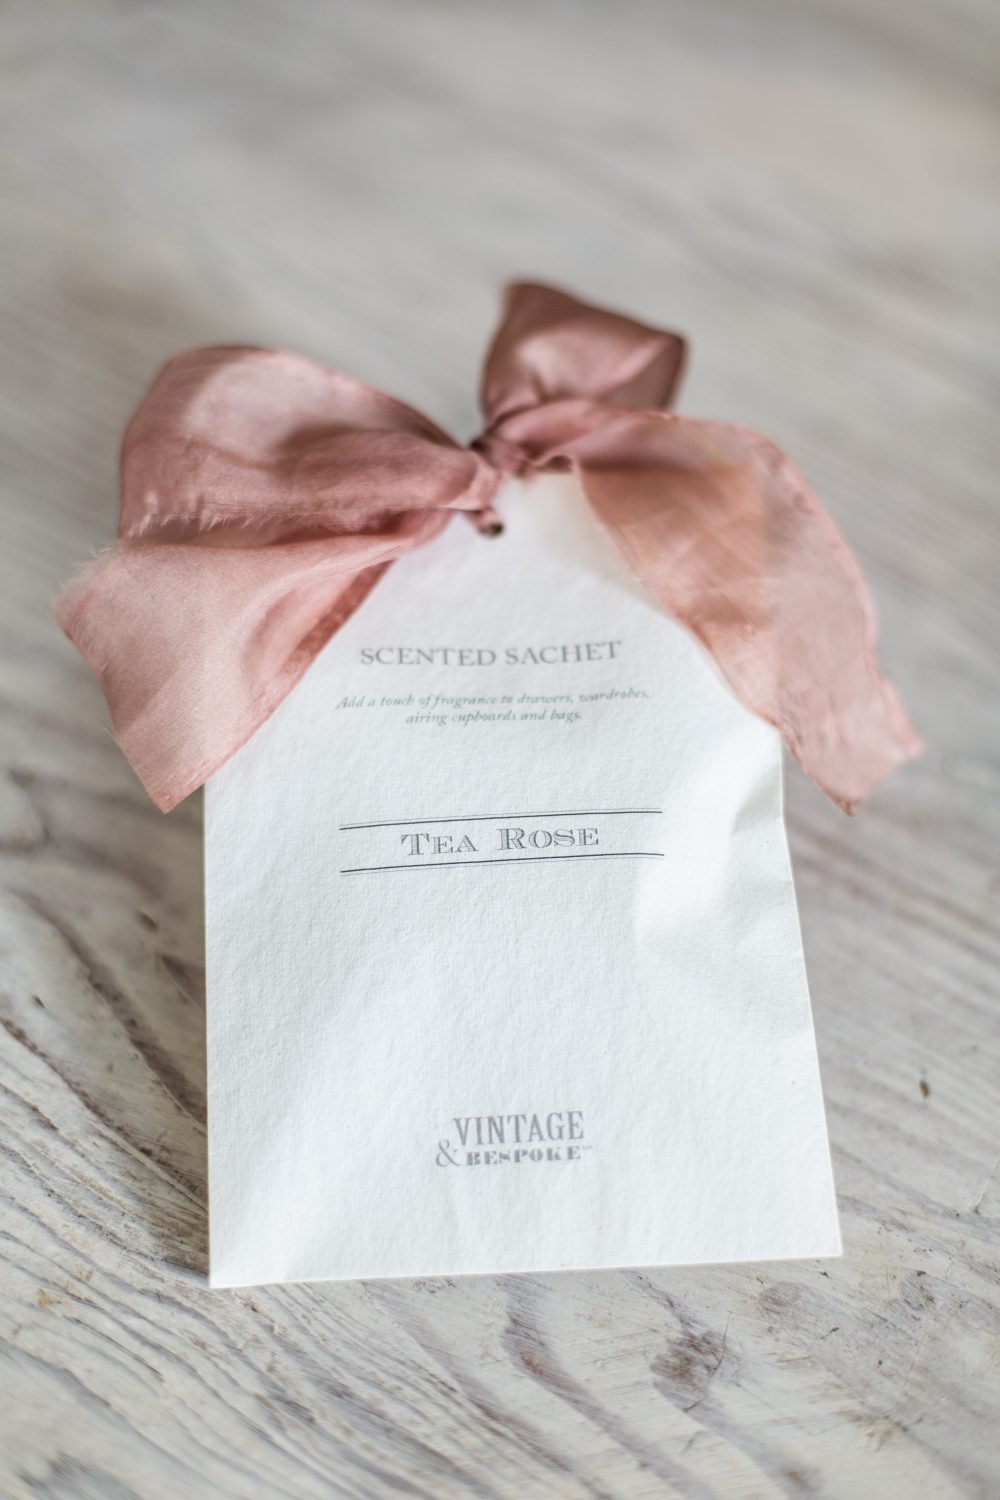 Scented Sachet by Vintage & Bespoke